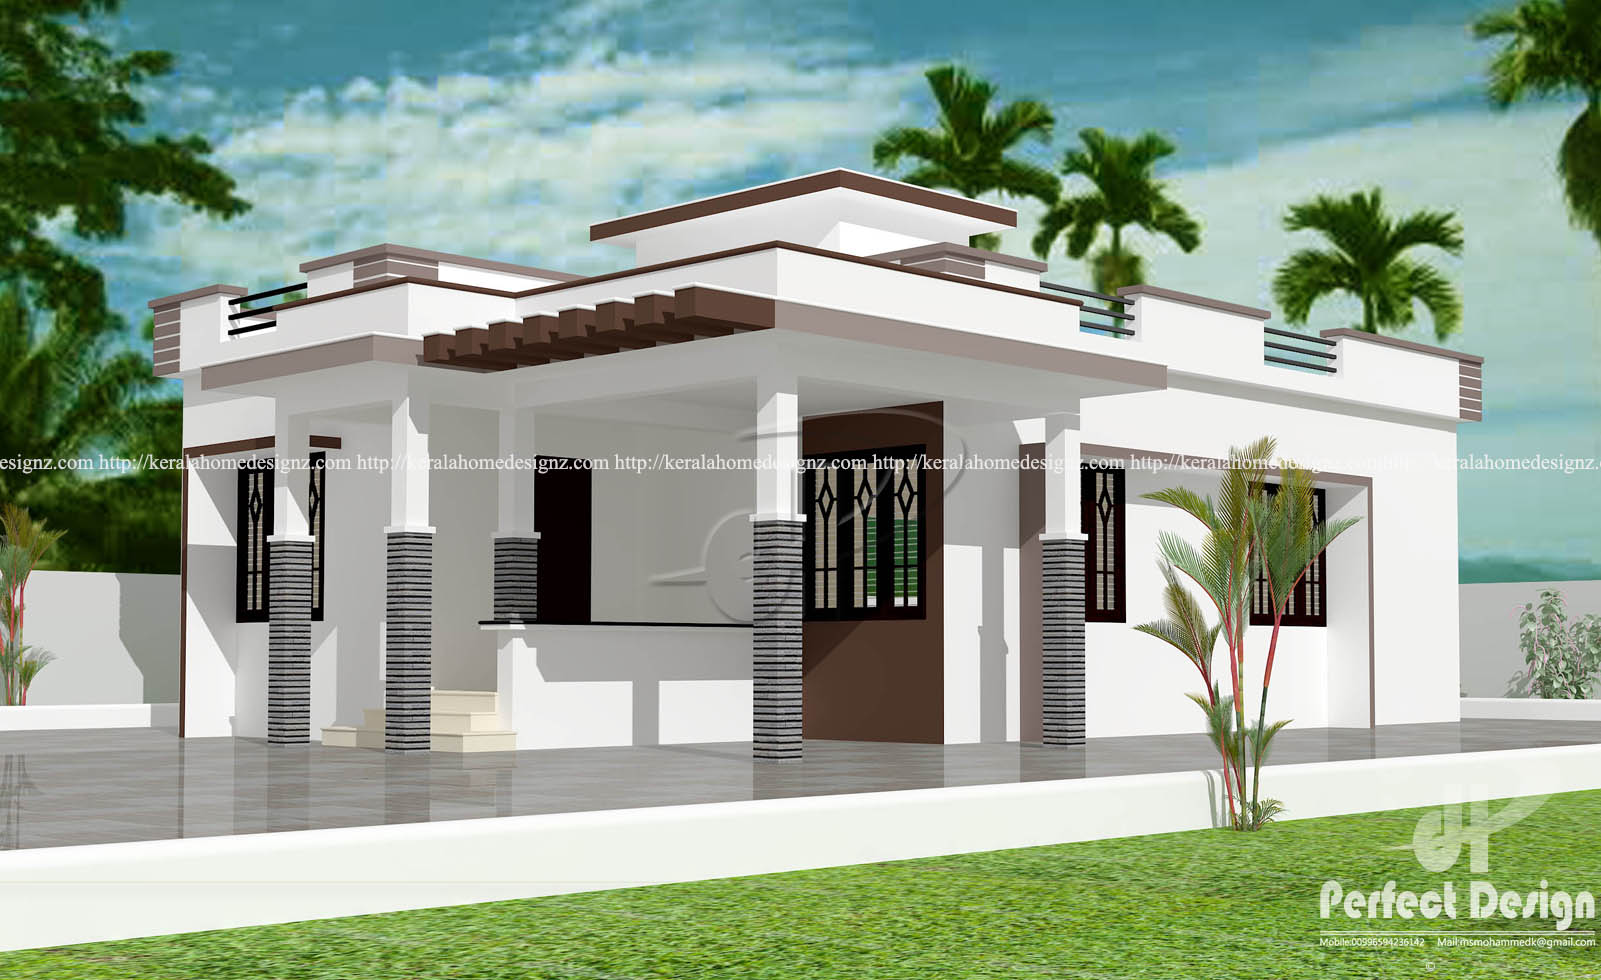 U20b912 Lakhs Cost Estimated Modern Home